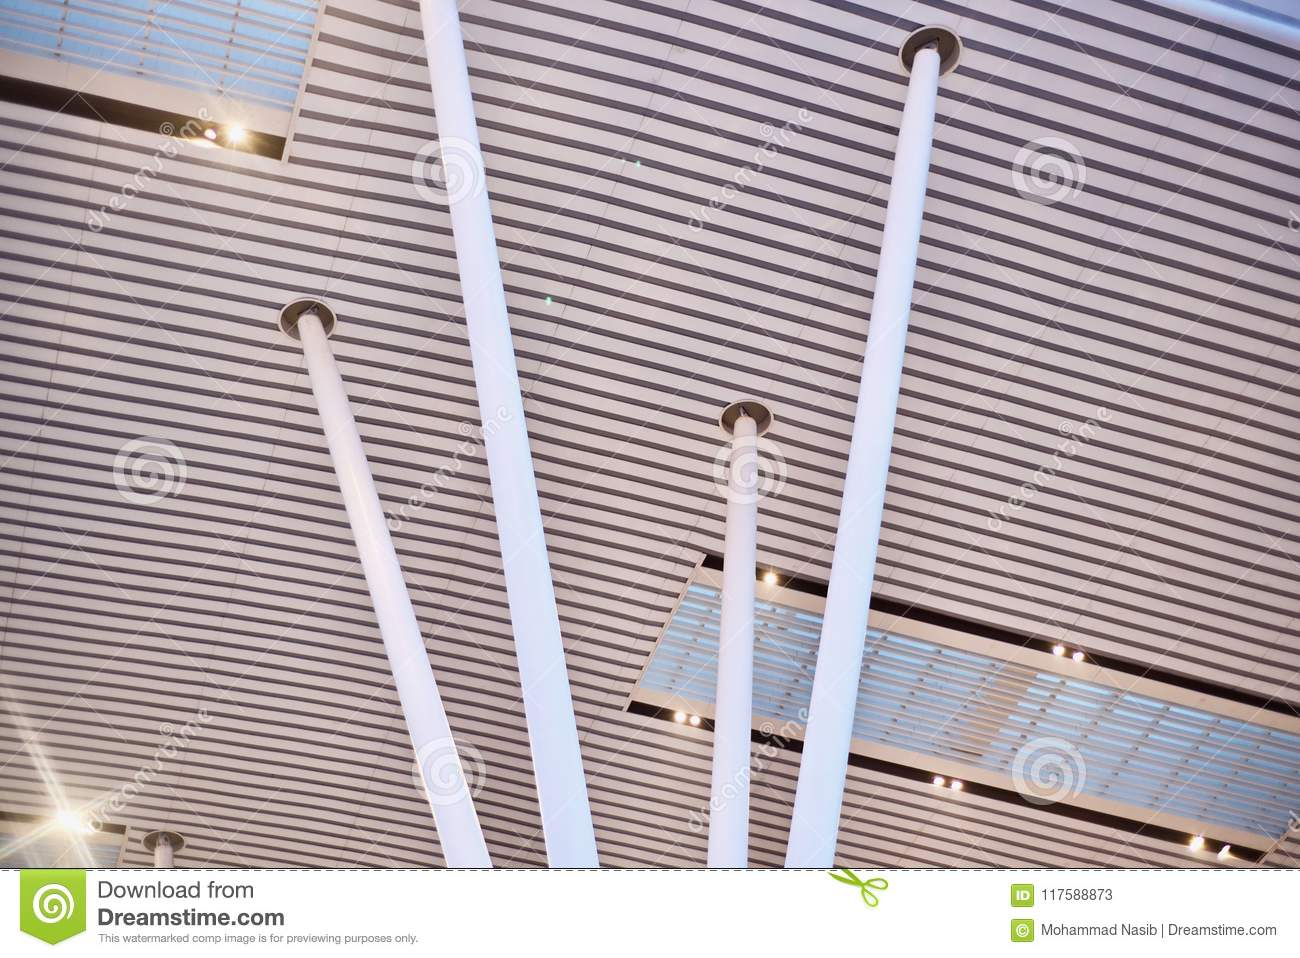 Download Stylish Metallic Pillars Of An Architectural Building Unique Photo Stock Image - Image of convention, photo: 117588873